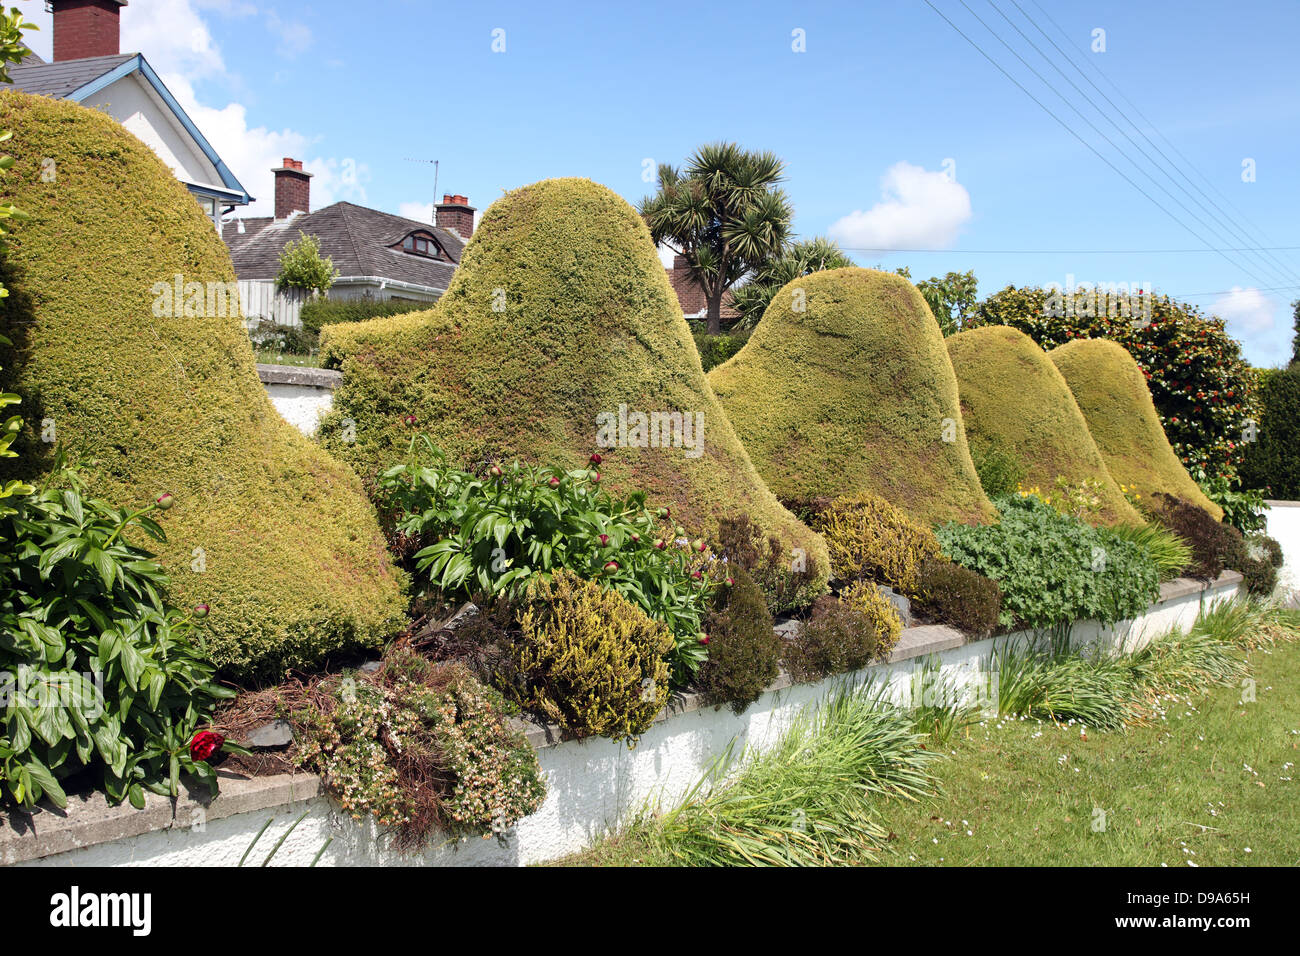 Conifer topiary in a Northern Ireland garden - Stock Image